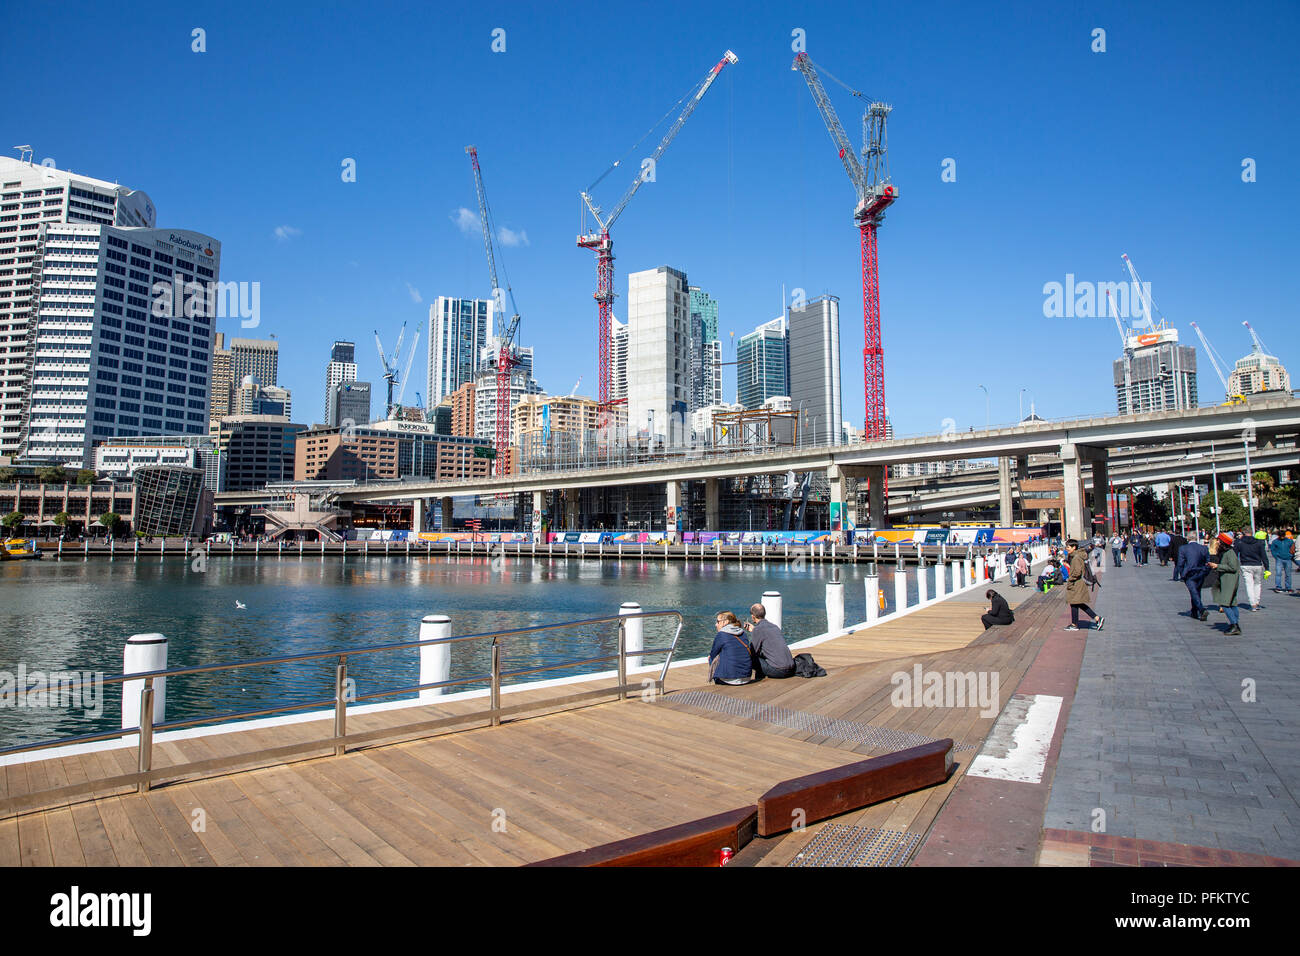 Darling harbour in Sydney city centre along with construction development underway,Sydney,Australia - Stock Image